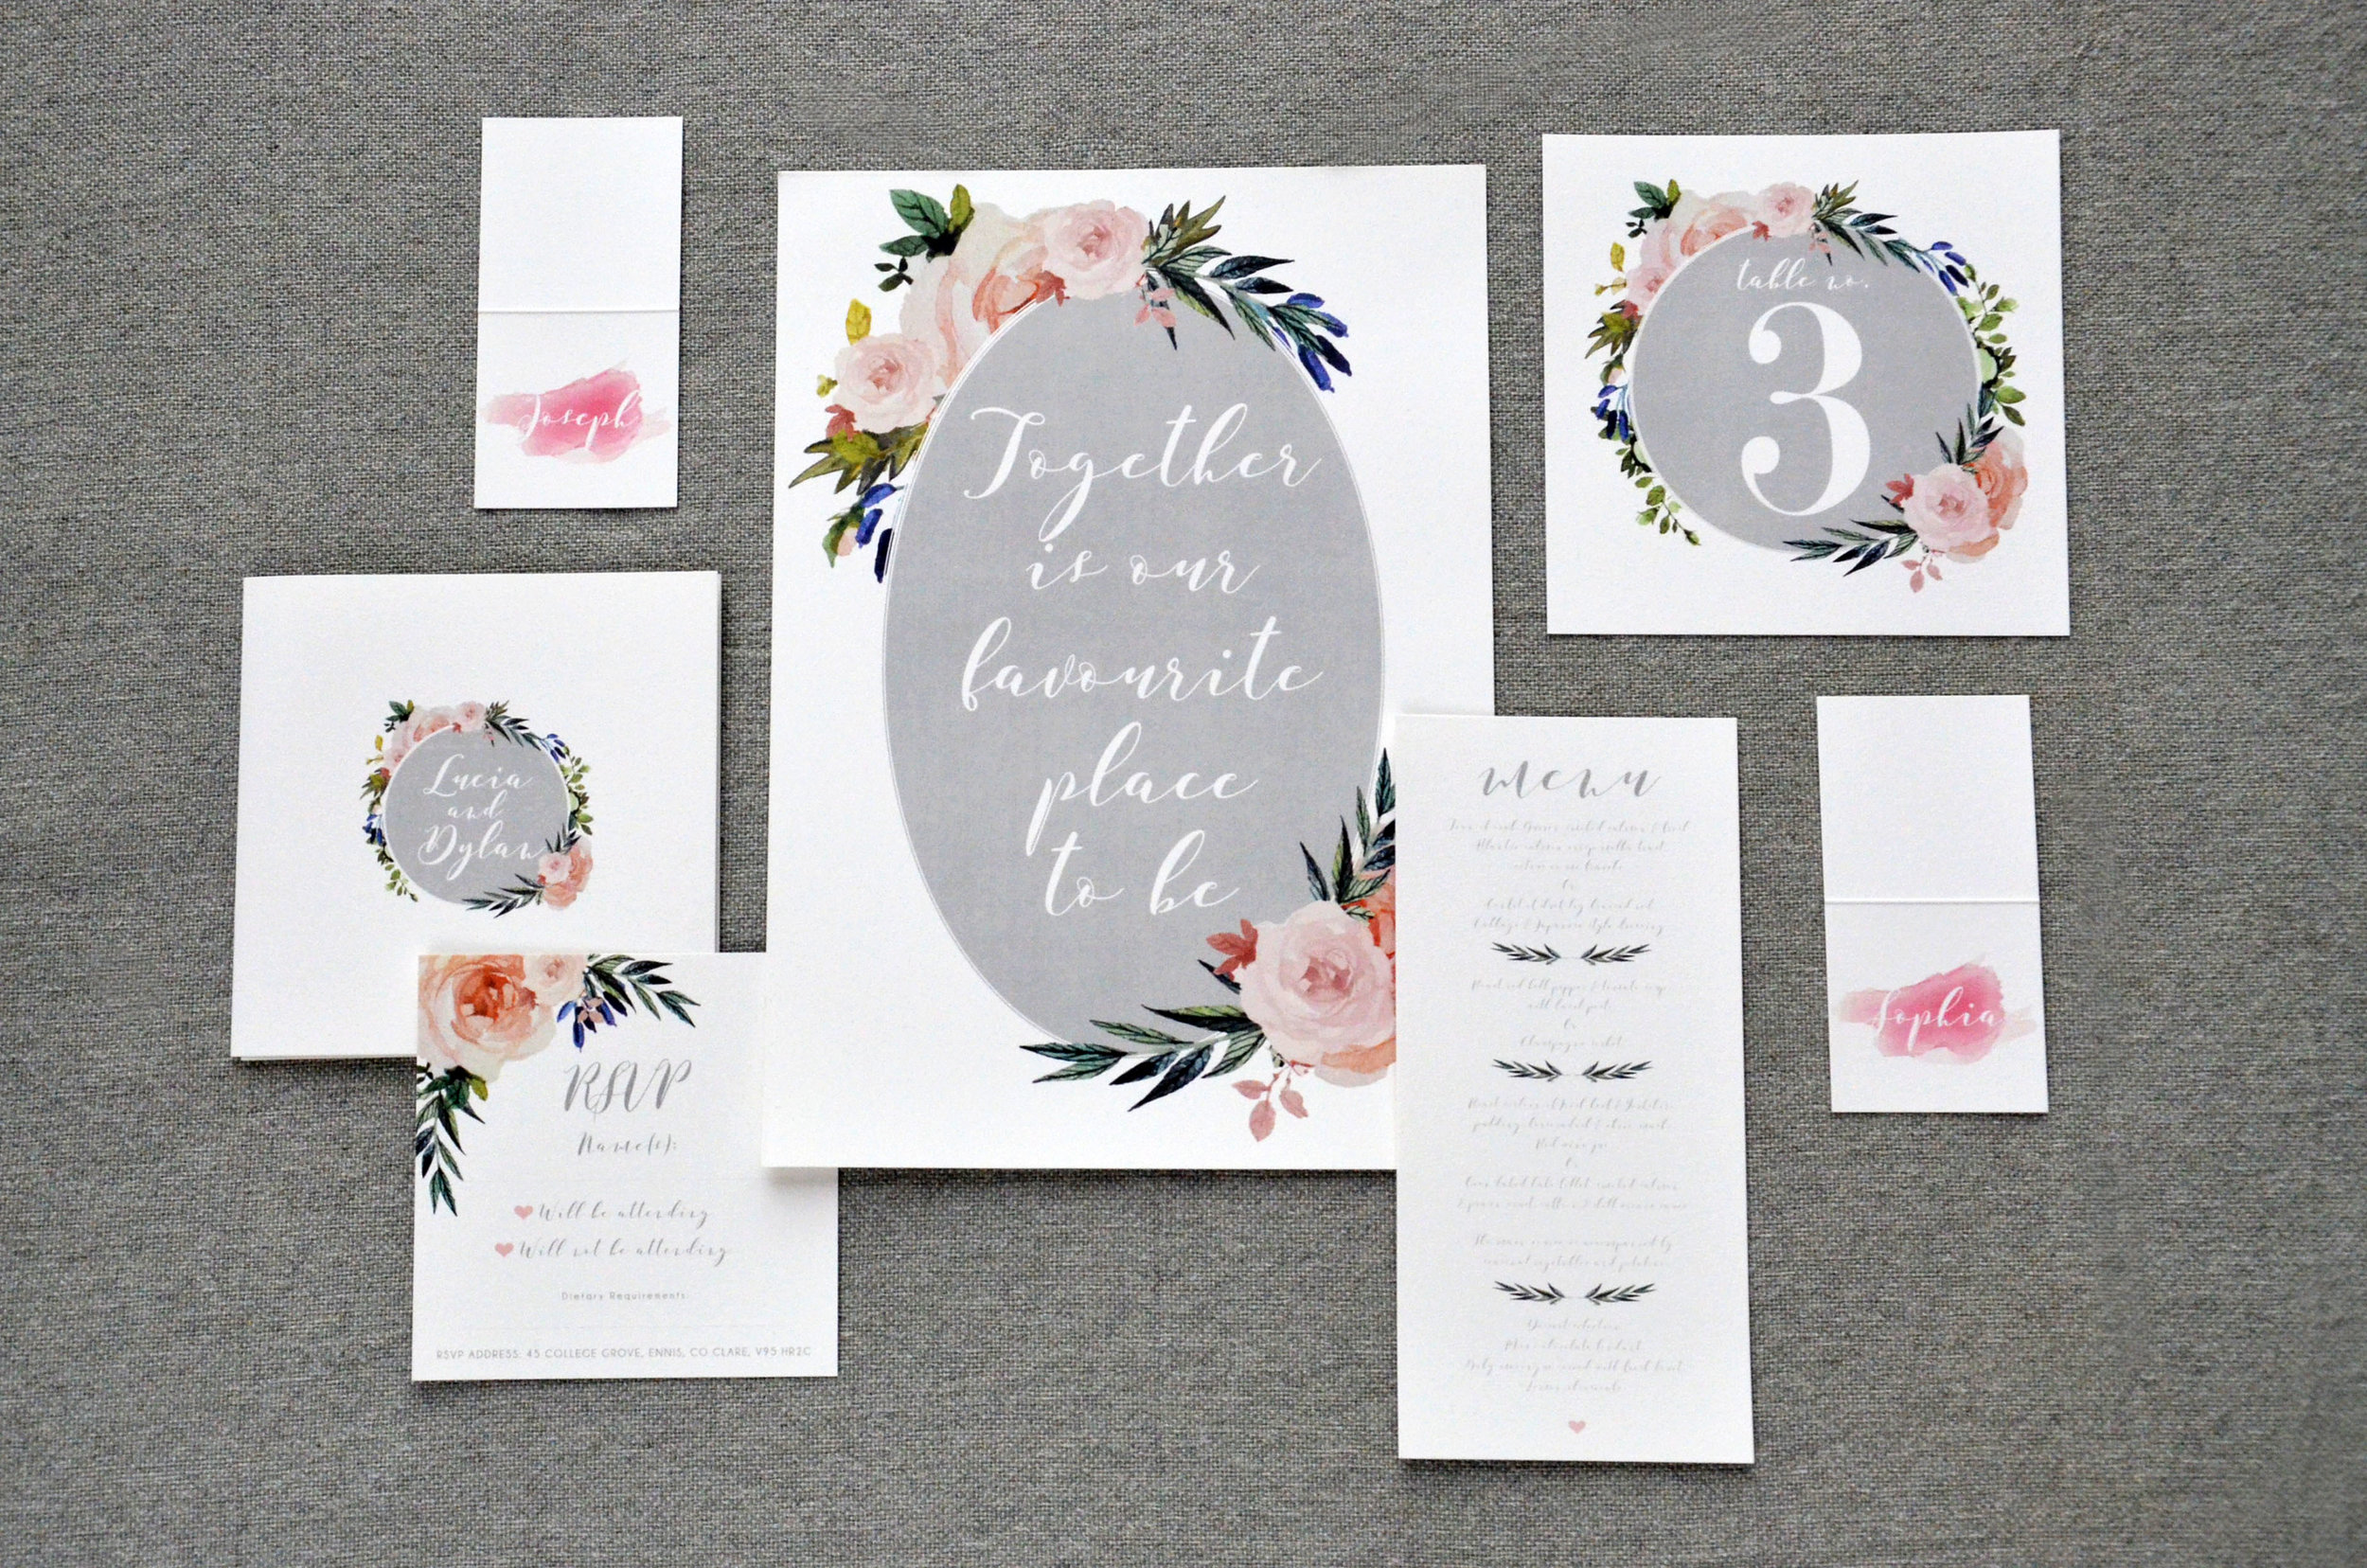 belleza wedding suite.jpg